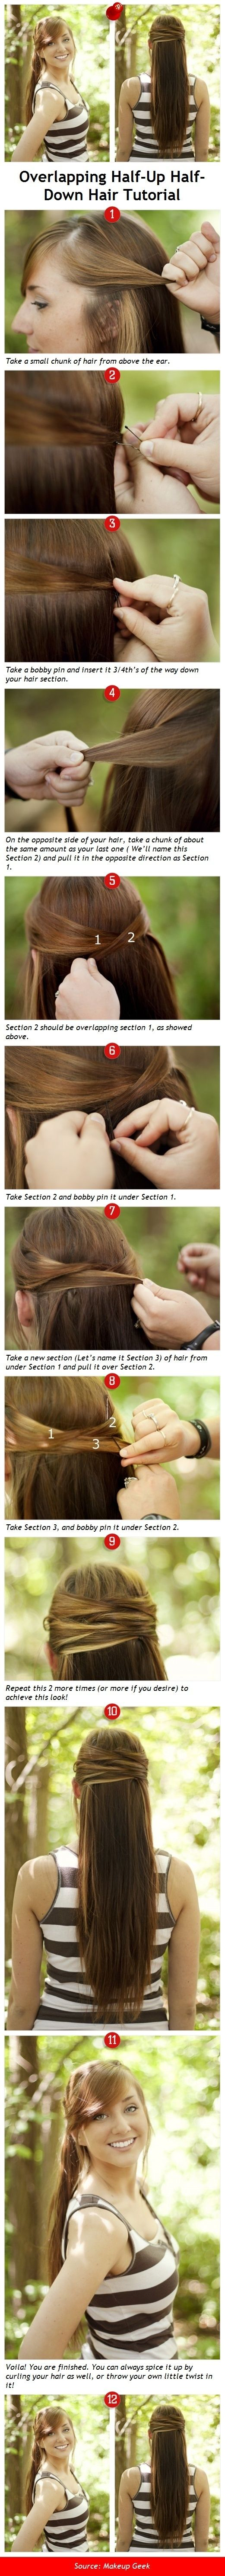 Overlapping Half-Up Half-Down Hair Tutorial, can't wait until my hair is long enough for this